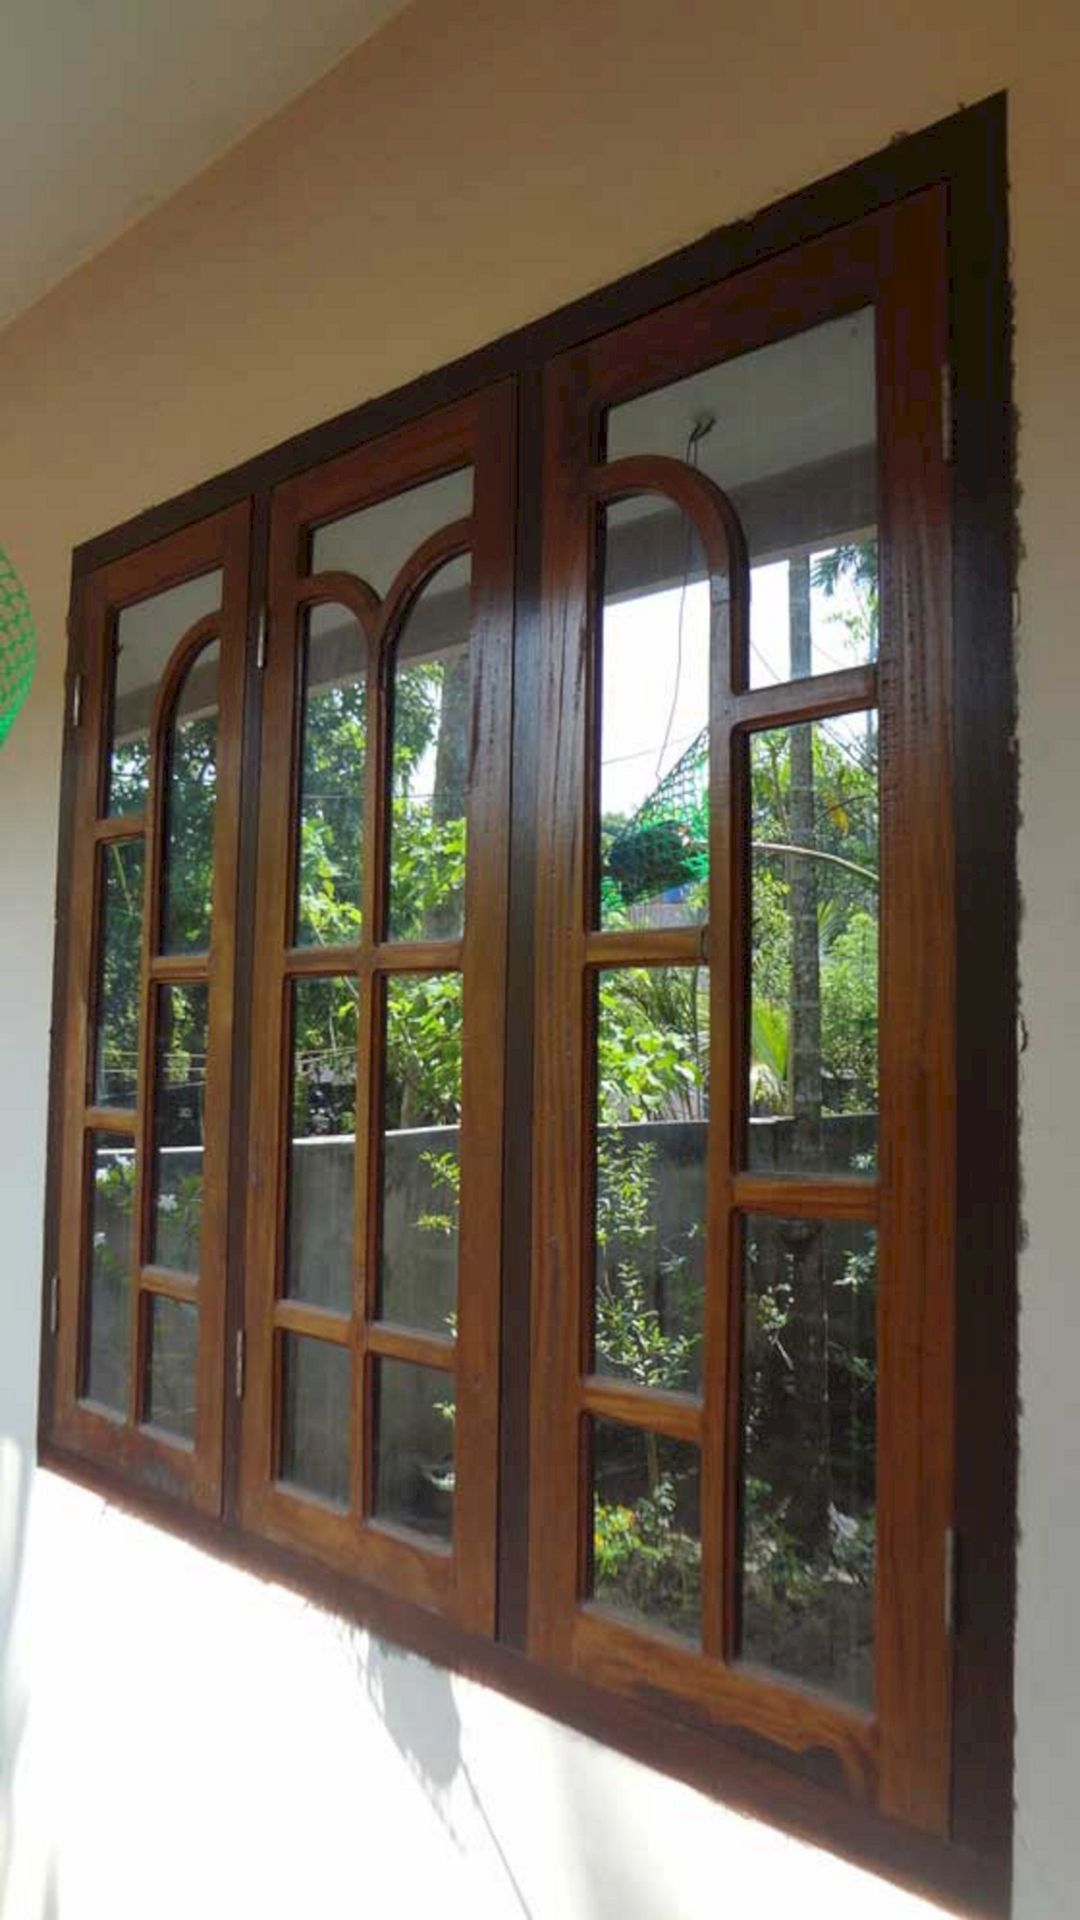 Astounding Best And Awesome 23 Unique Windows For Your Home Decoration Ideas Https Decoredo Co Indian Window Design House Window Design Wooden Window Design